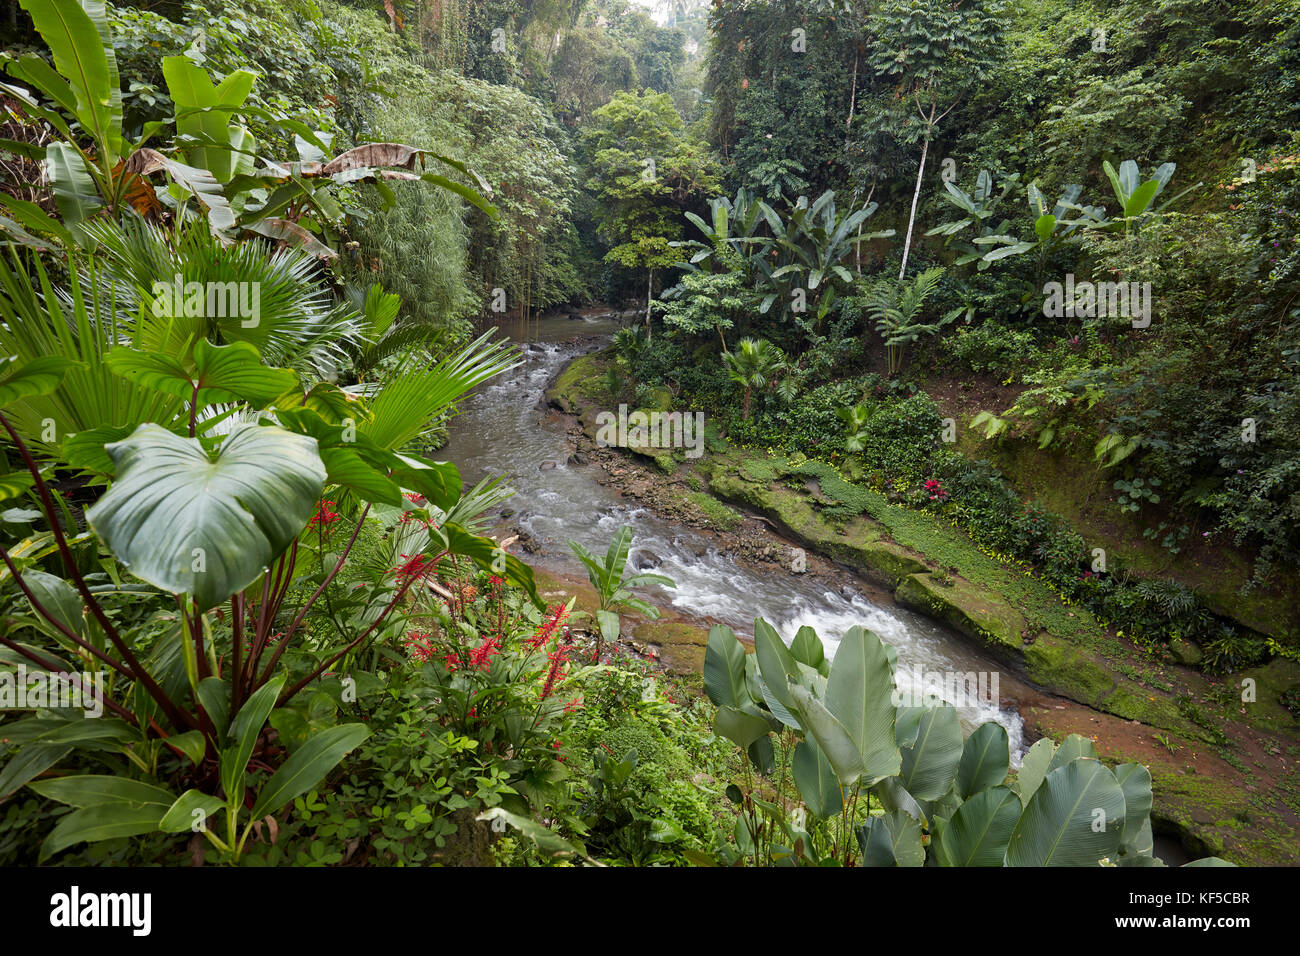 Small river running through rainforest near Hotel Tjampuhan Spa. Ubud, Bali, Indonesia. Stock Photo